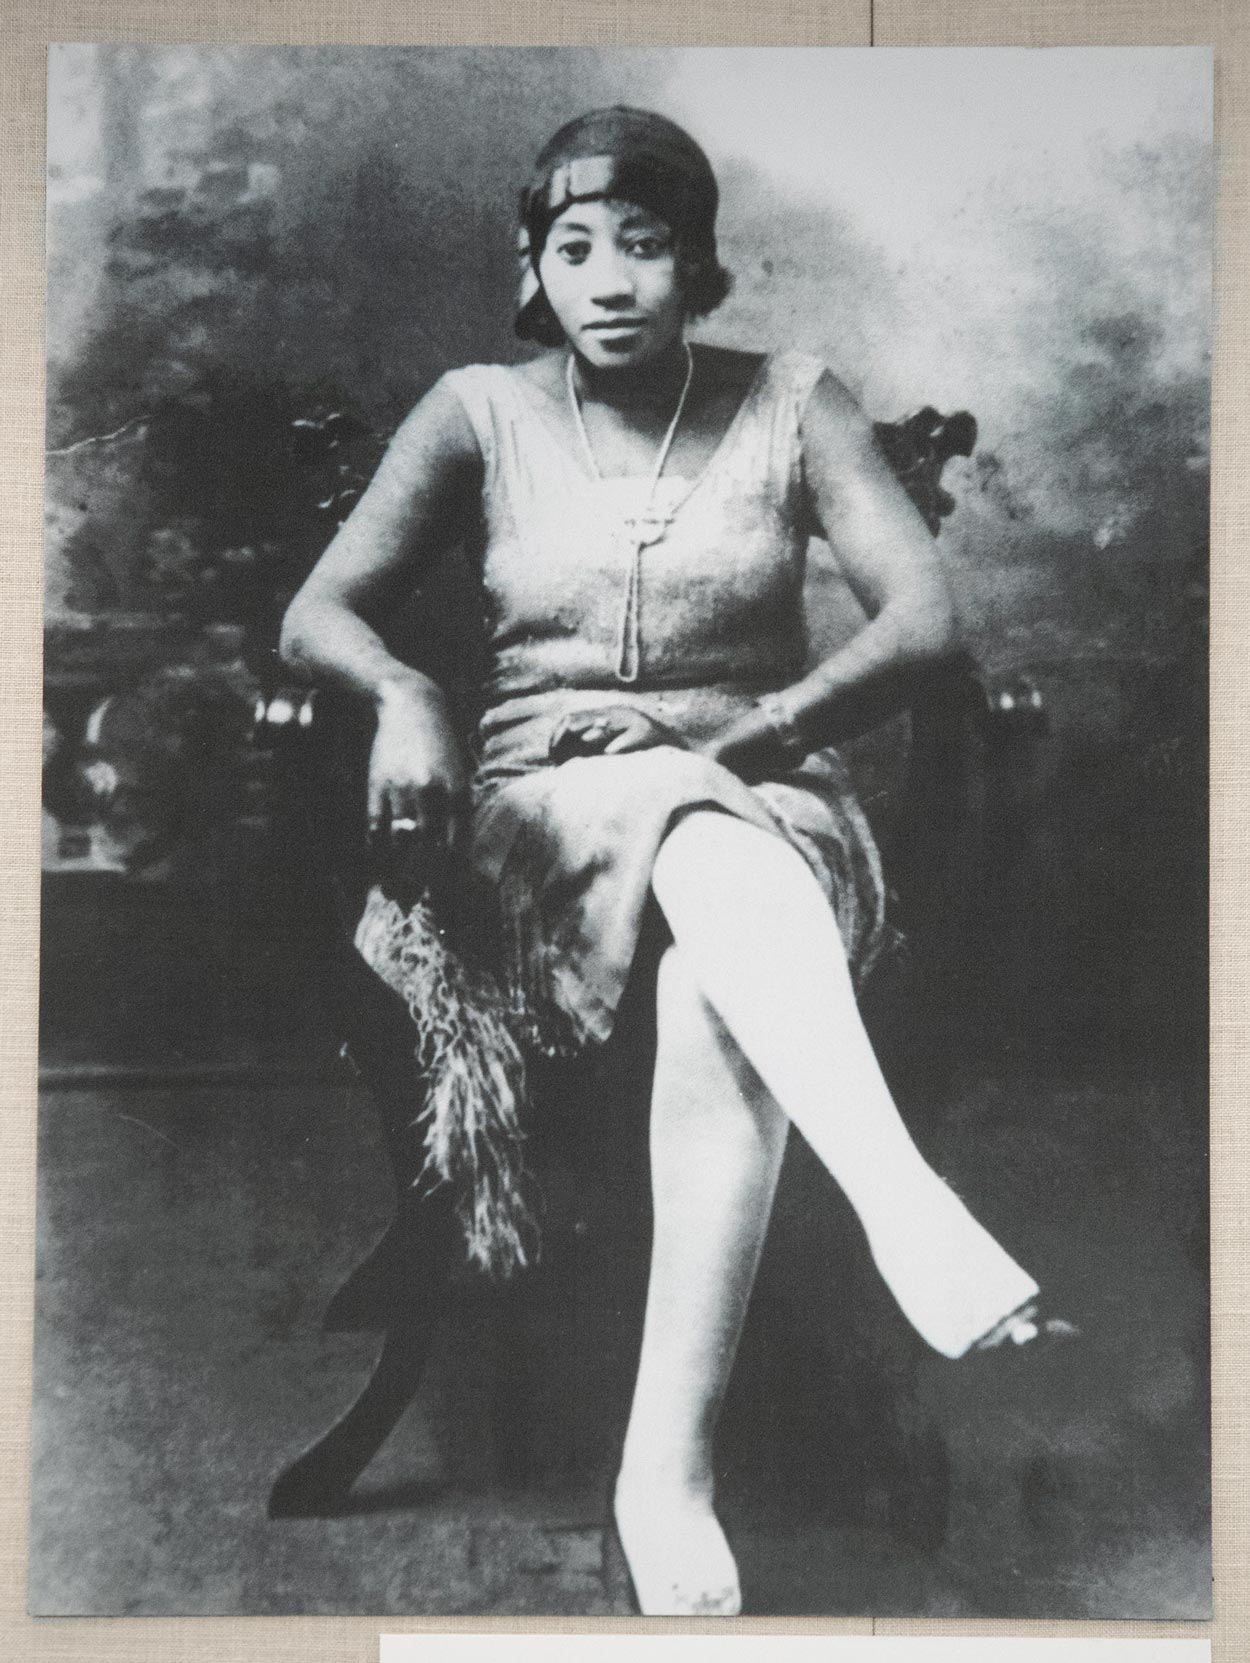 """Mary Ann Rush, depicted here, dressed like a quintessential """"flapper girl"""" of the 1920s, """"evidently knew a lot about fashion,"""" wrote reference librarian Regina Rush of her great-aunt."""